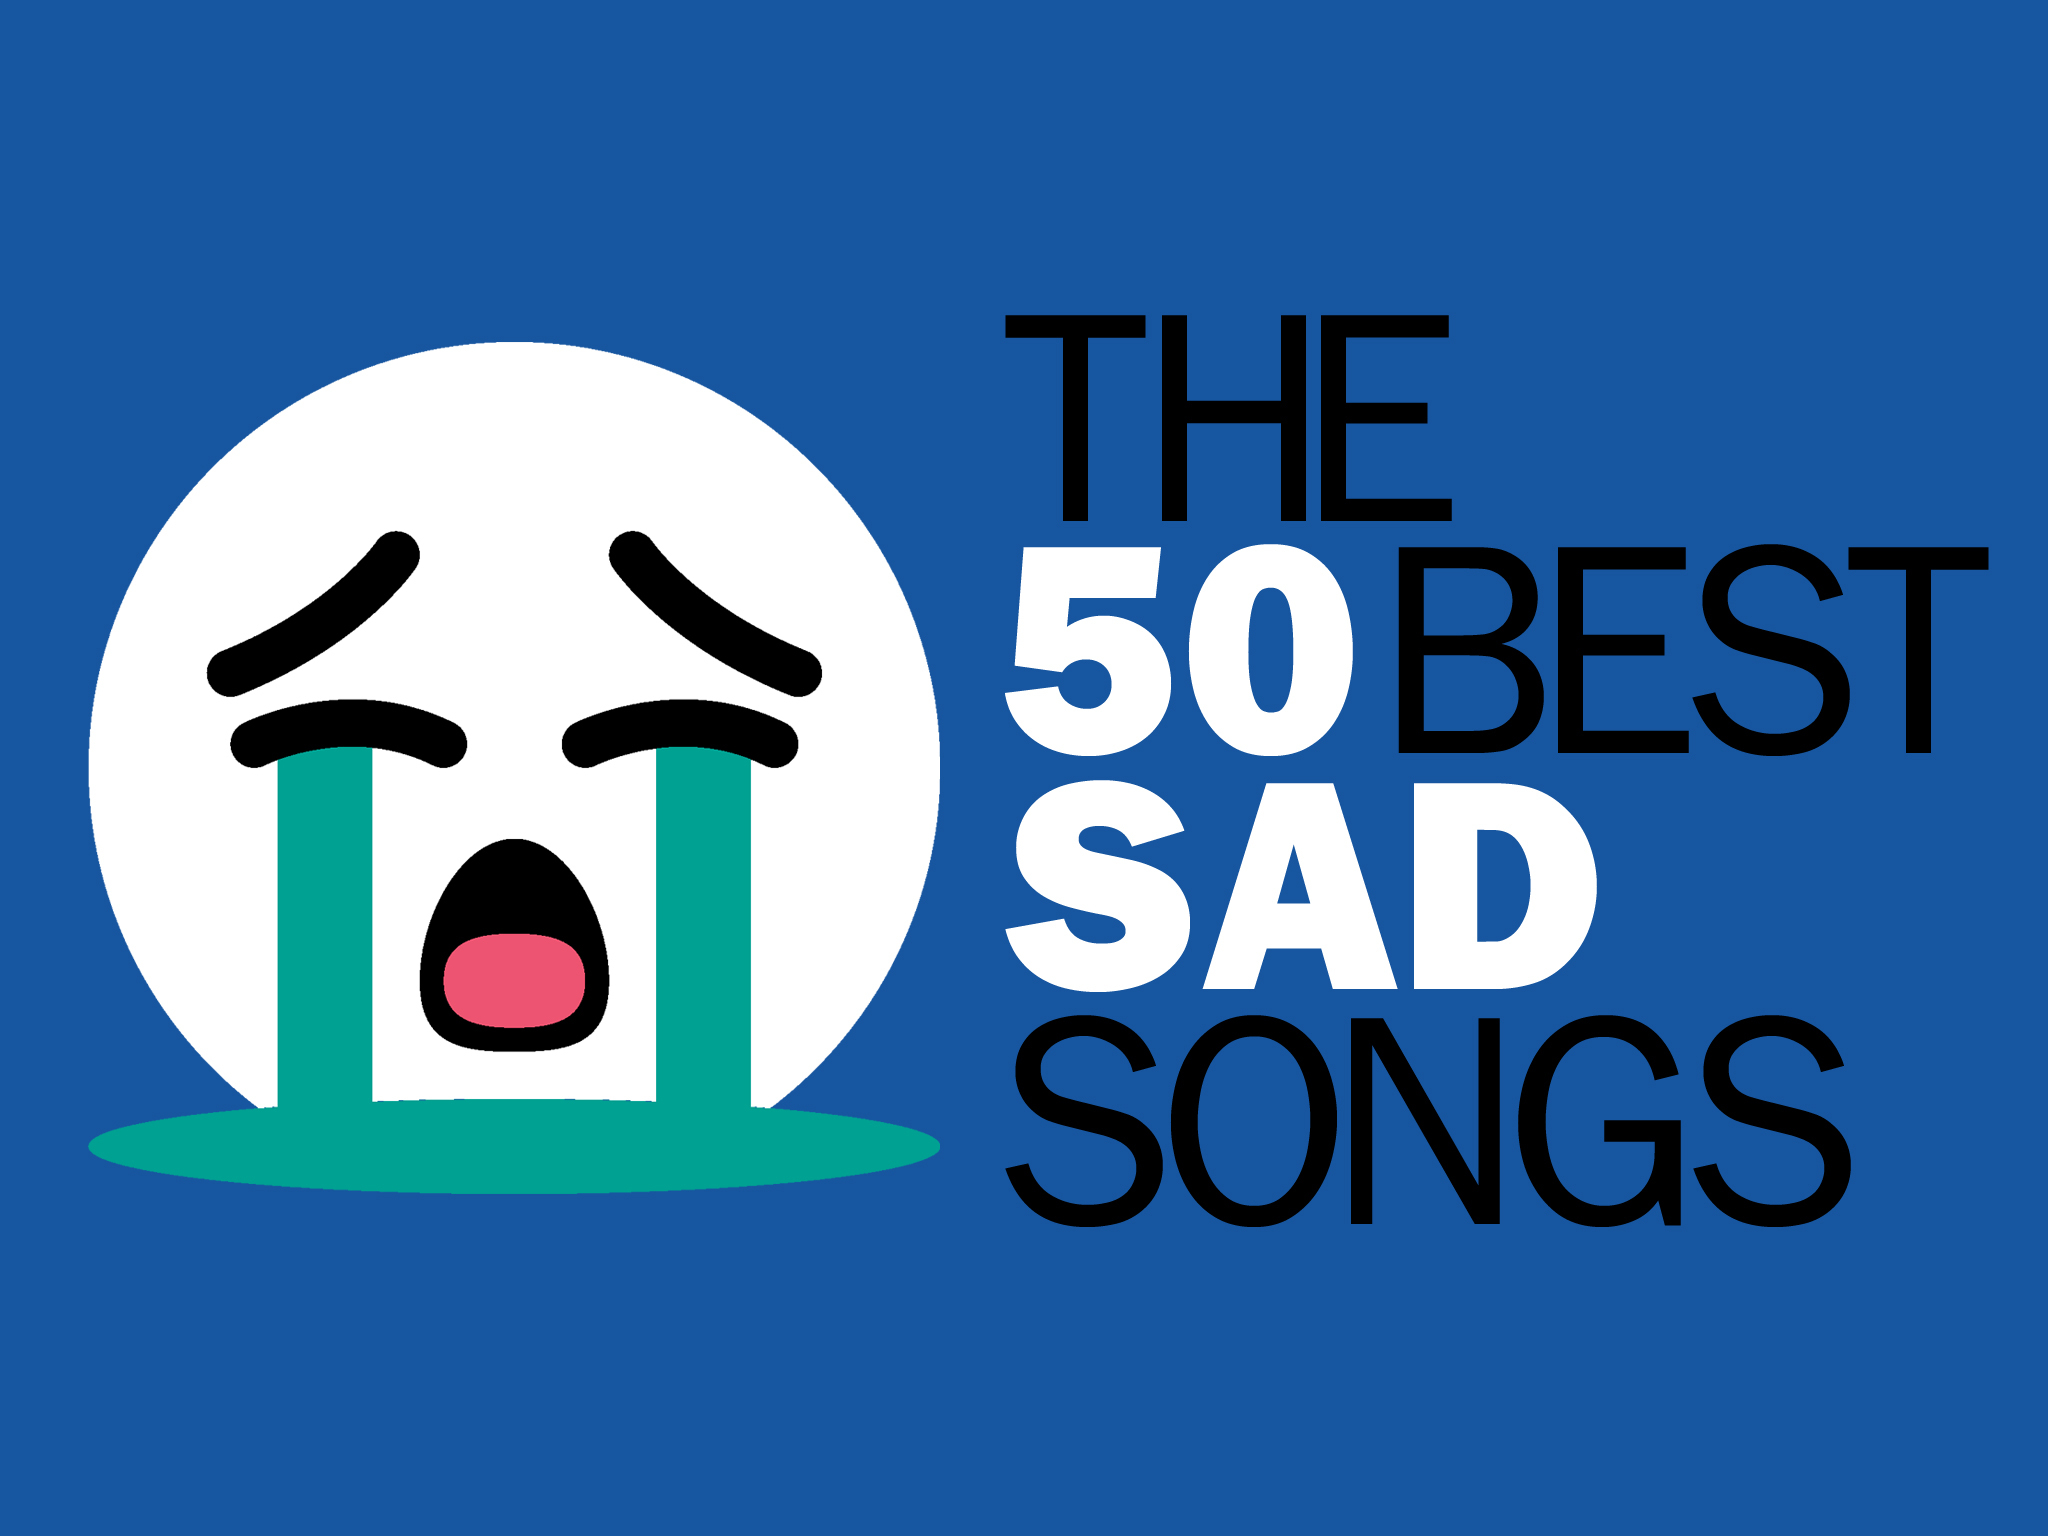 Incredibly sad songs